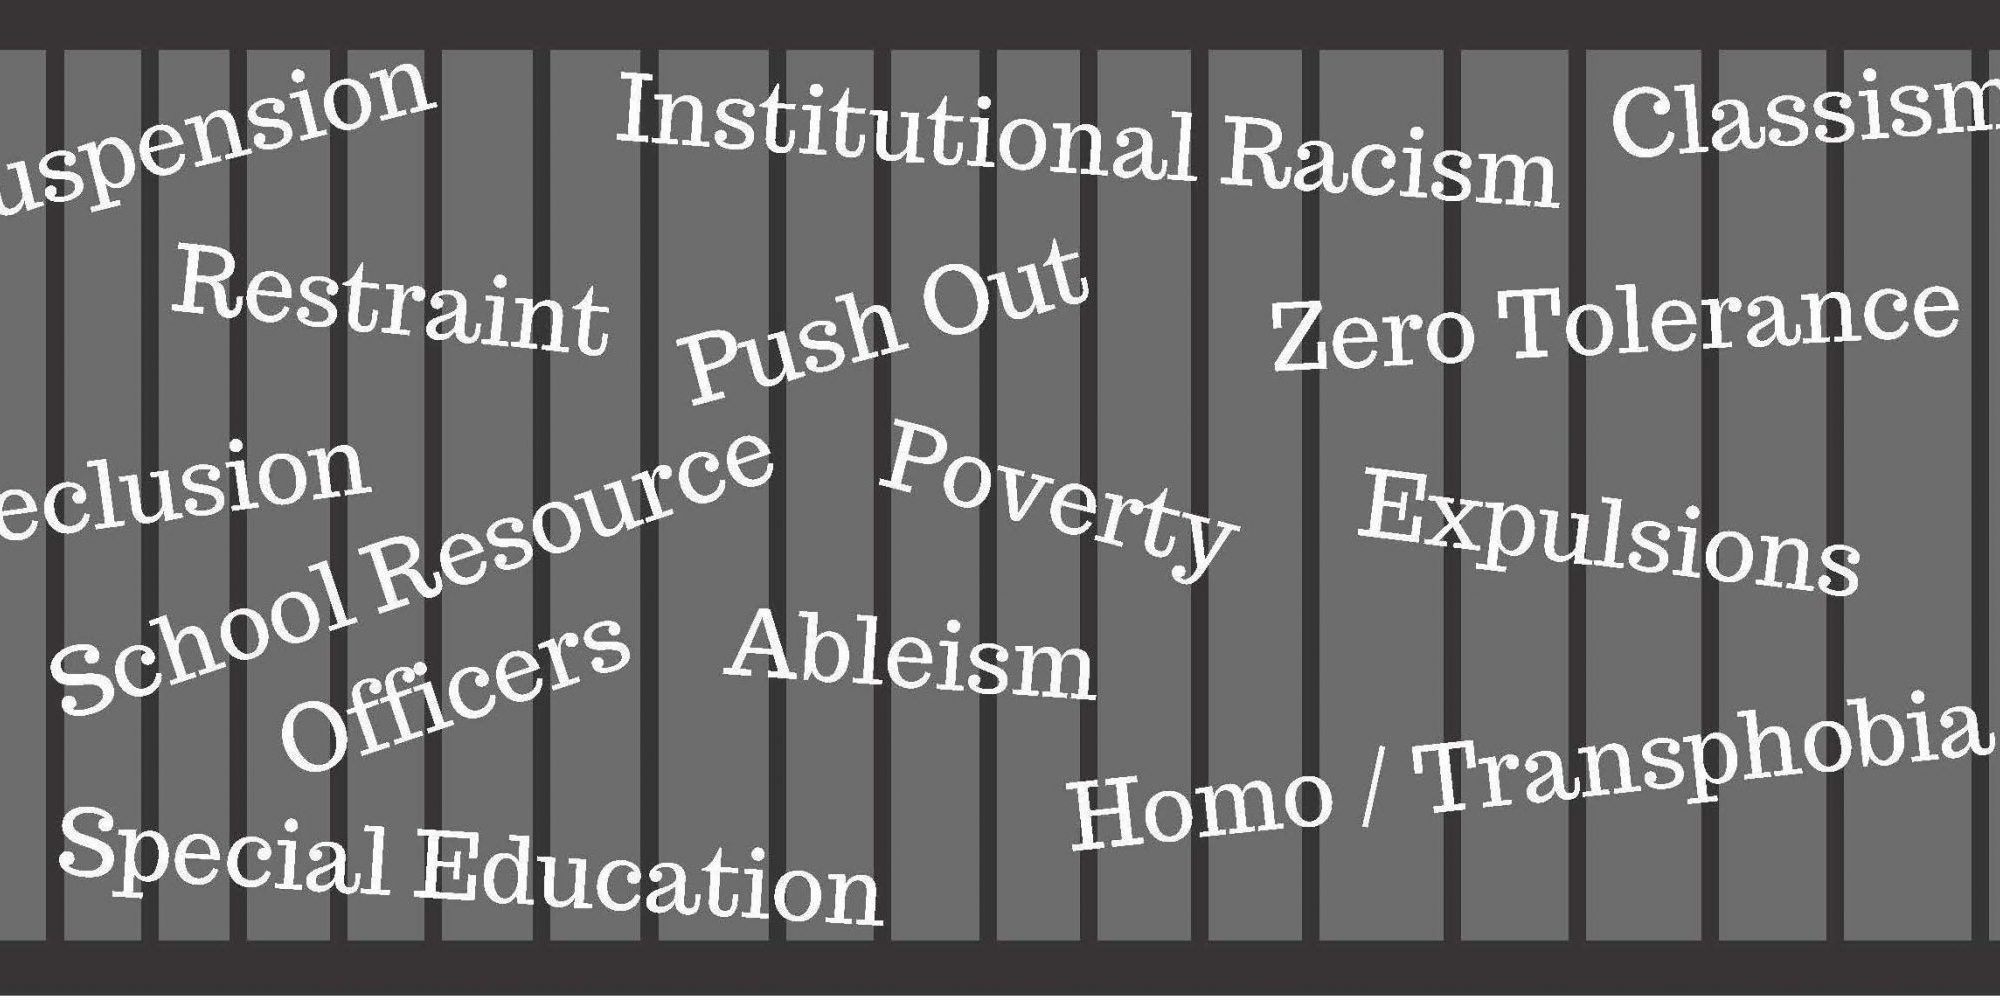 image of black bars against grey background. White words written over bars: Suspension, Restraint, Seclusion, School Resource Officers, Special Education, Institutional Racism, Push Out, Poverty, Ableism, Classism, Zero-Tolerance, Expulsions, Homo-Transphobia